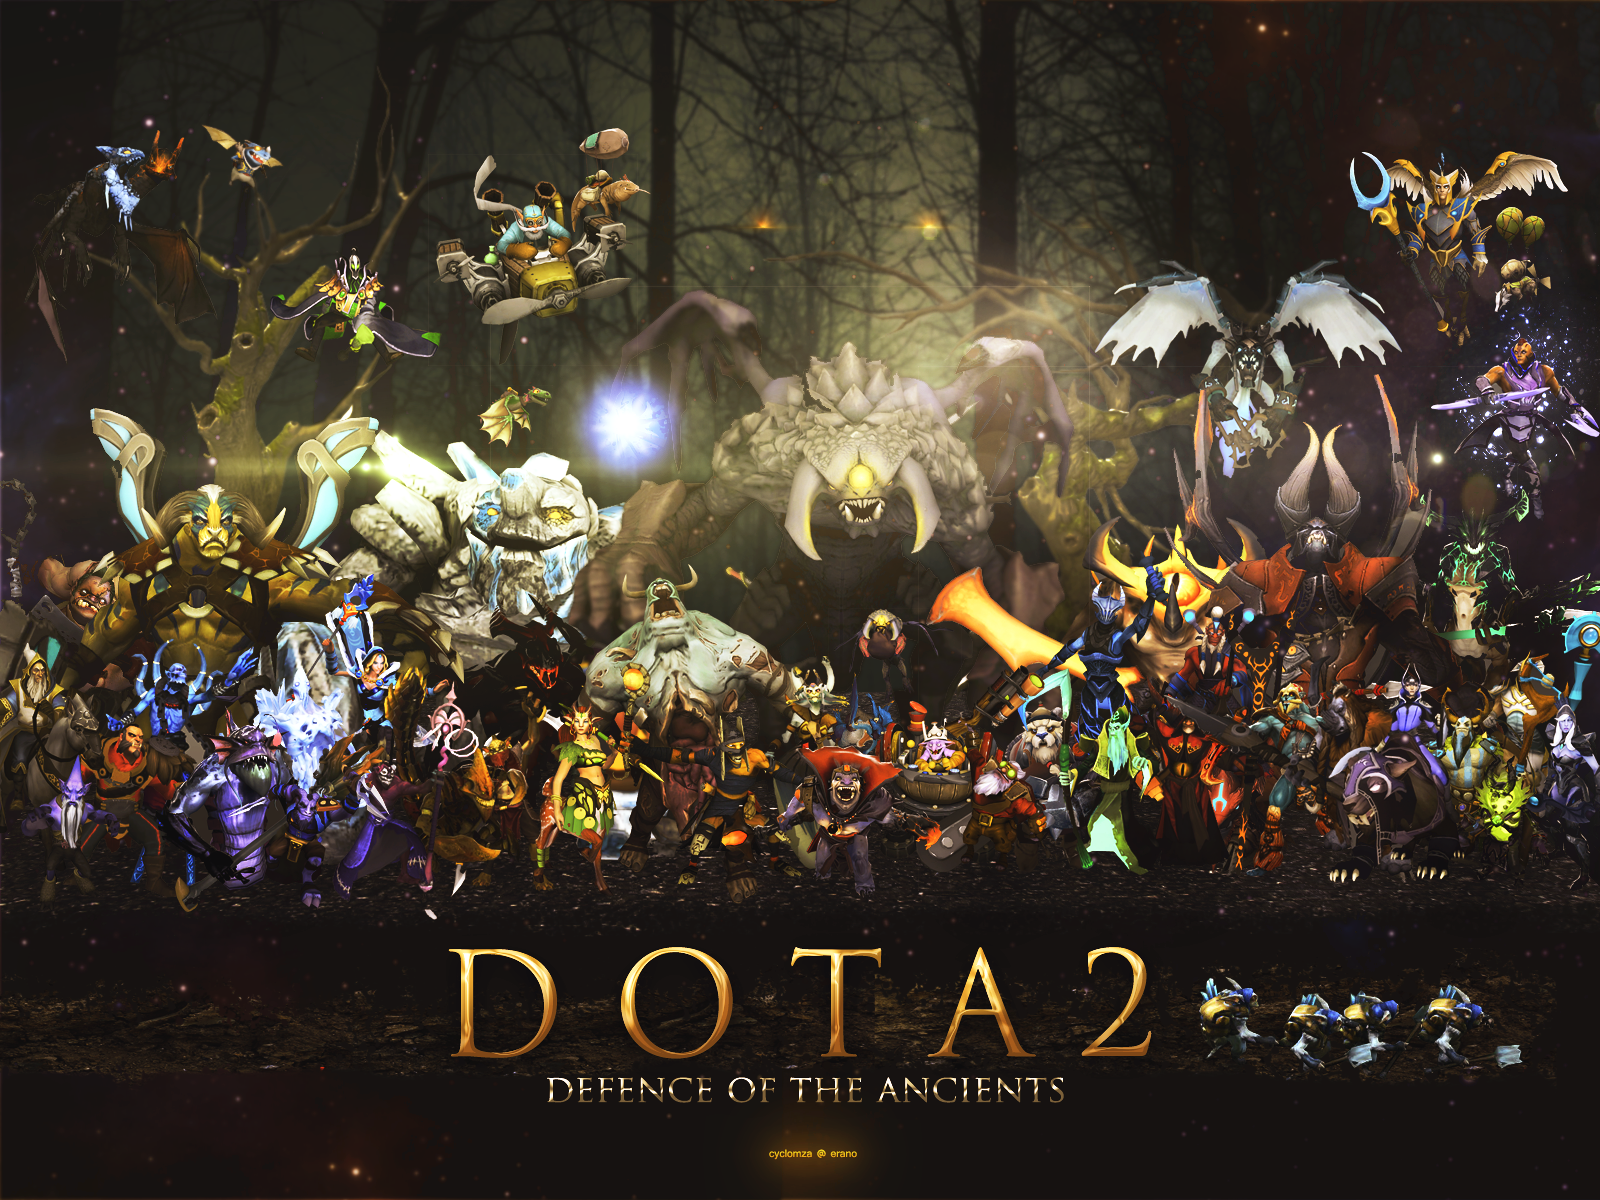 valve innovates defence of the ancients 2 scifi4me com